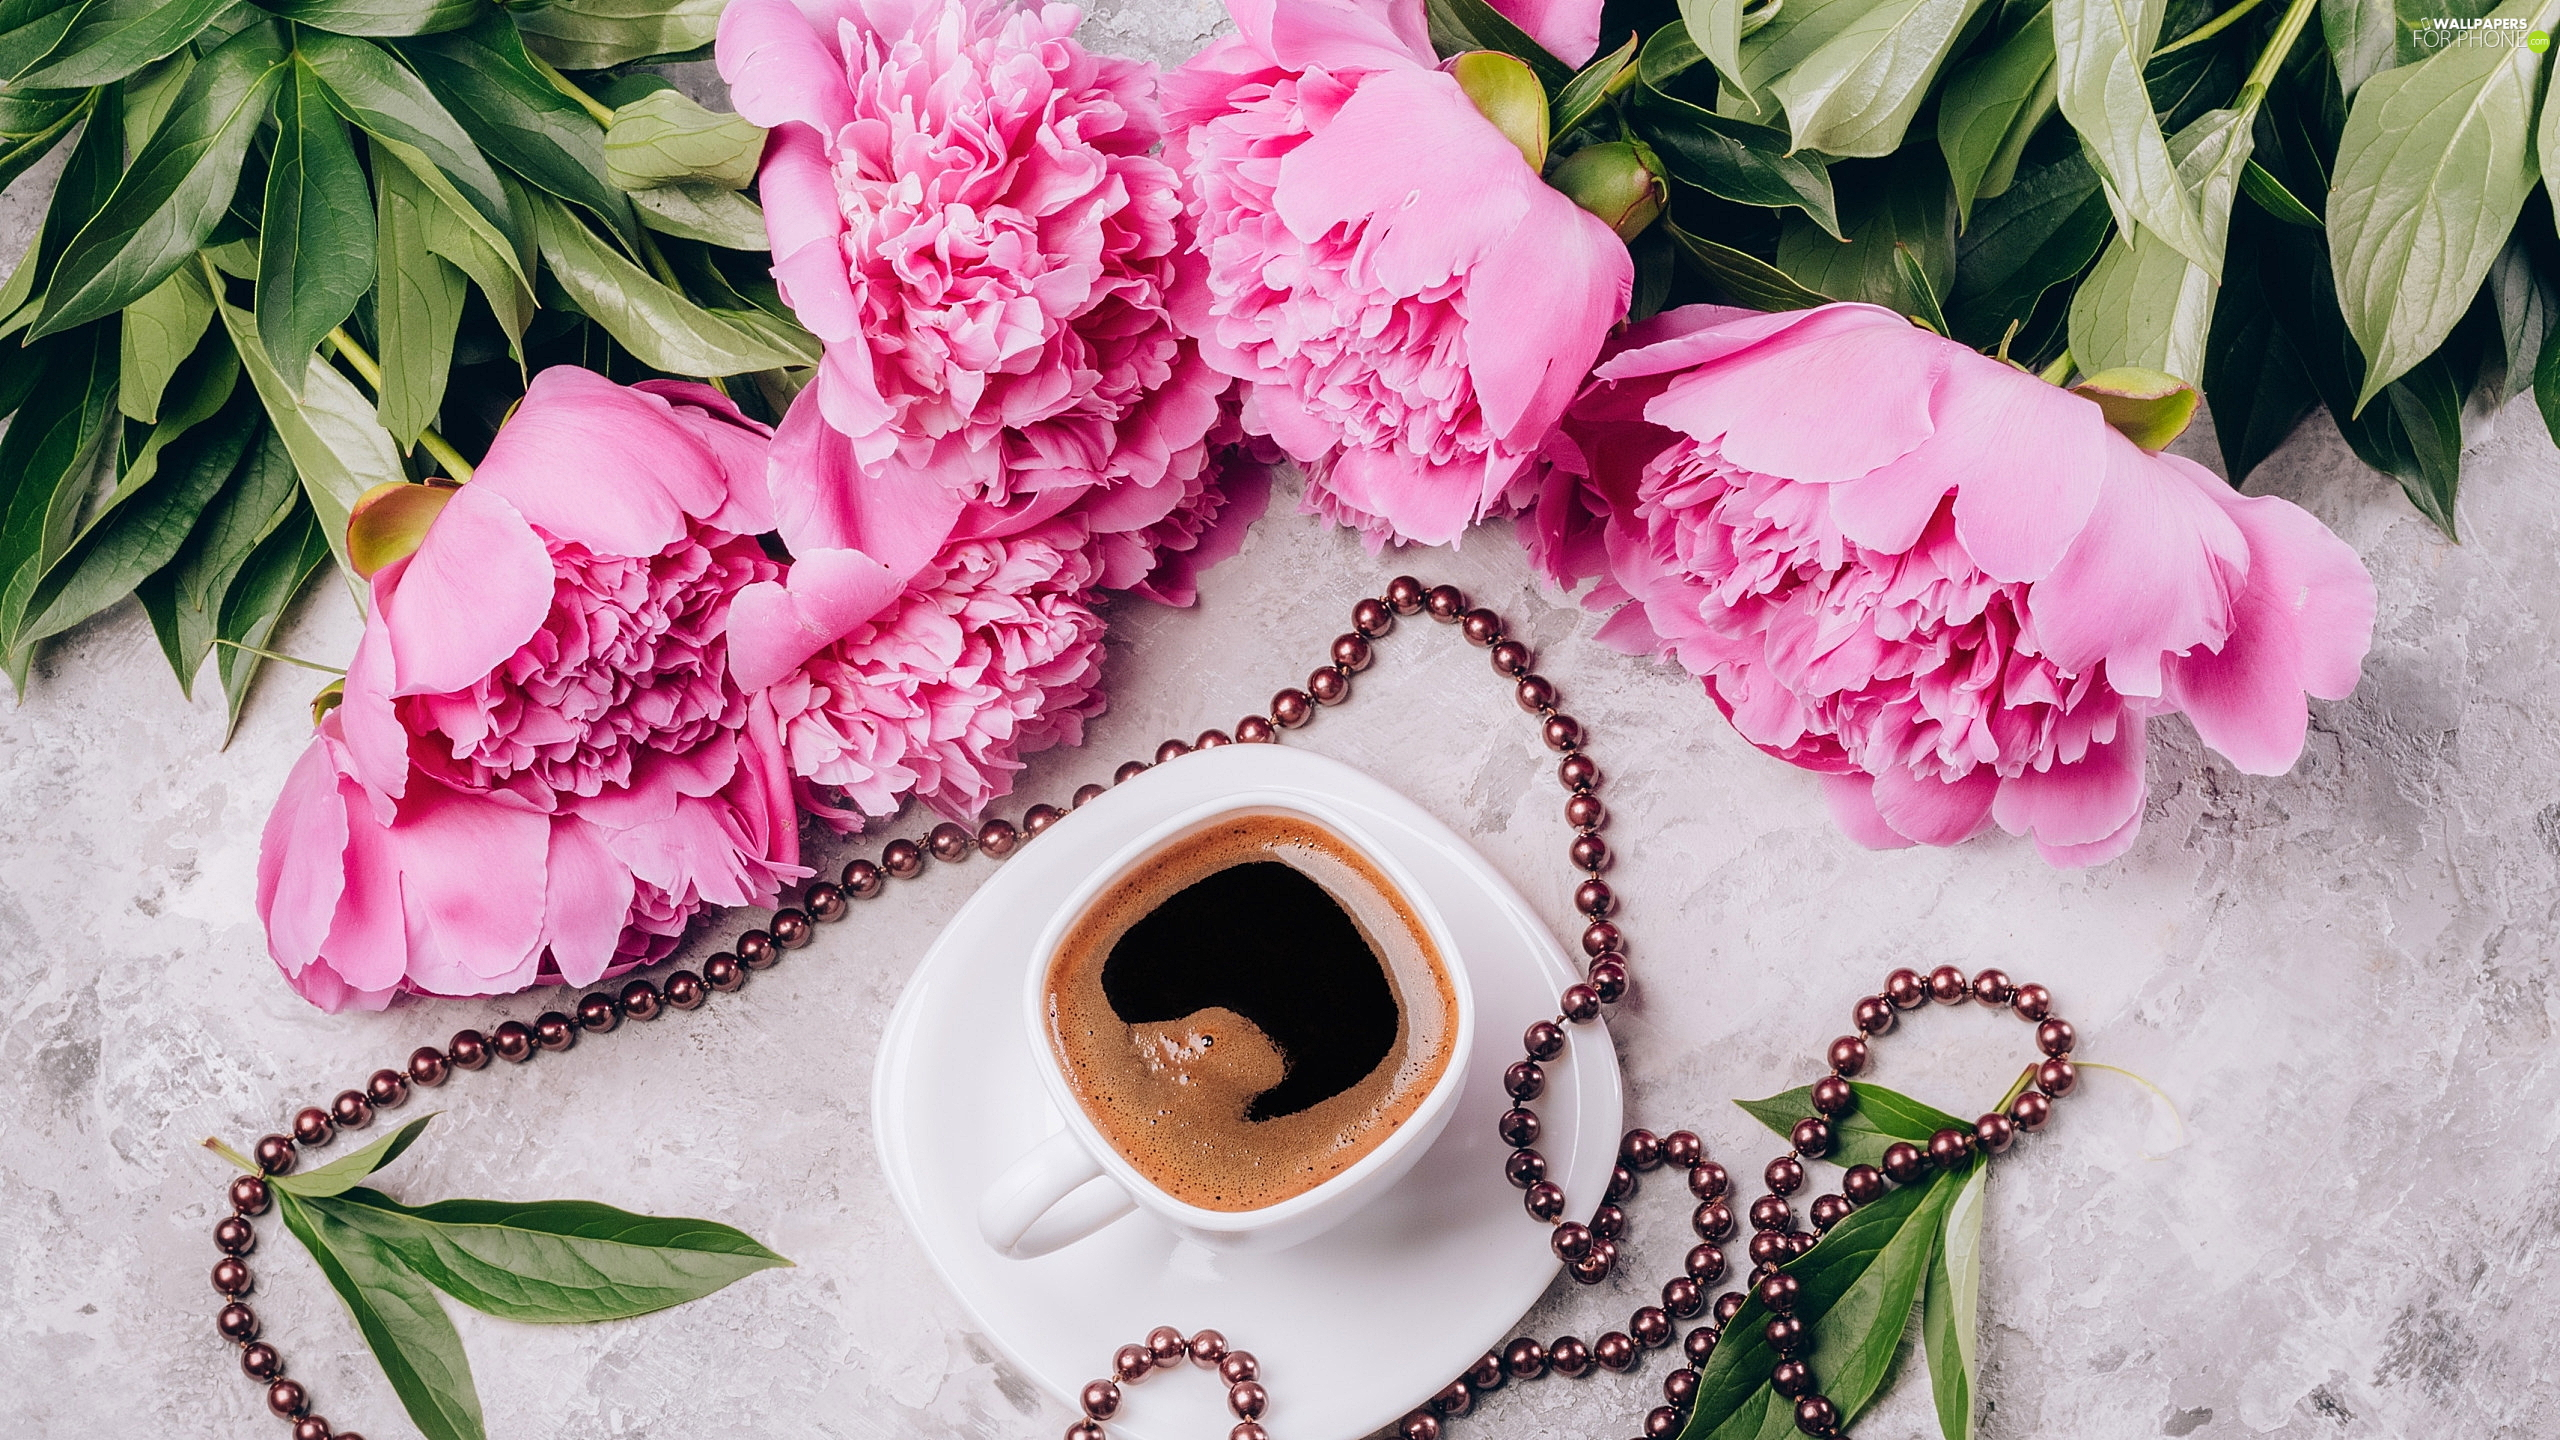 coffee, beads, Peonies, cup, Flowers